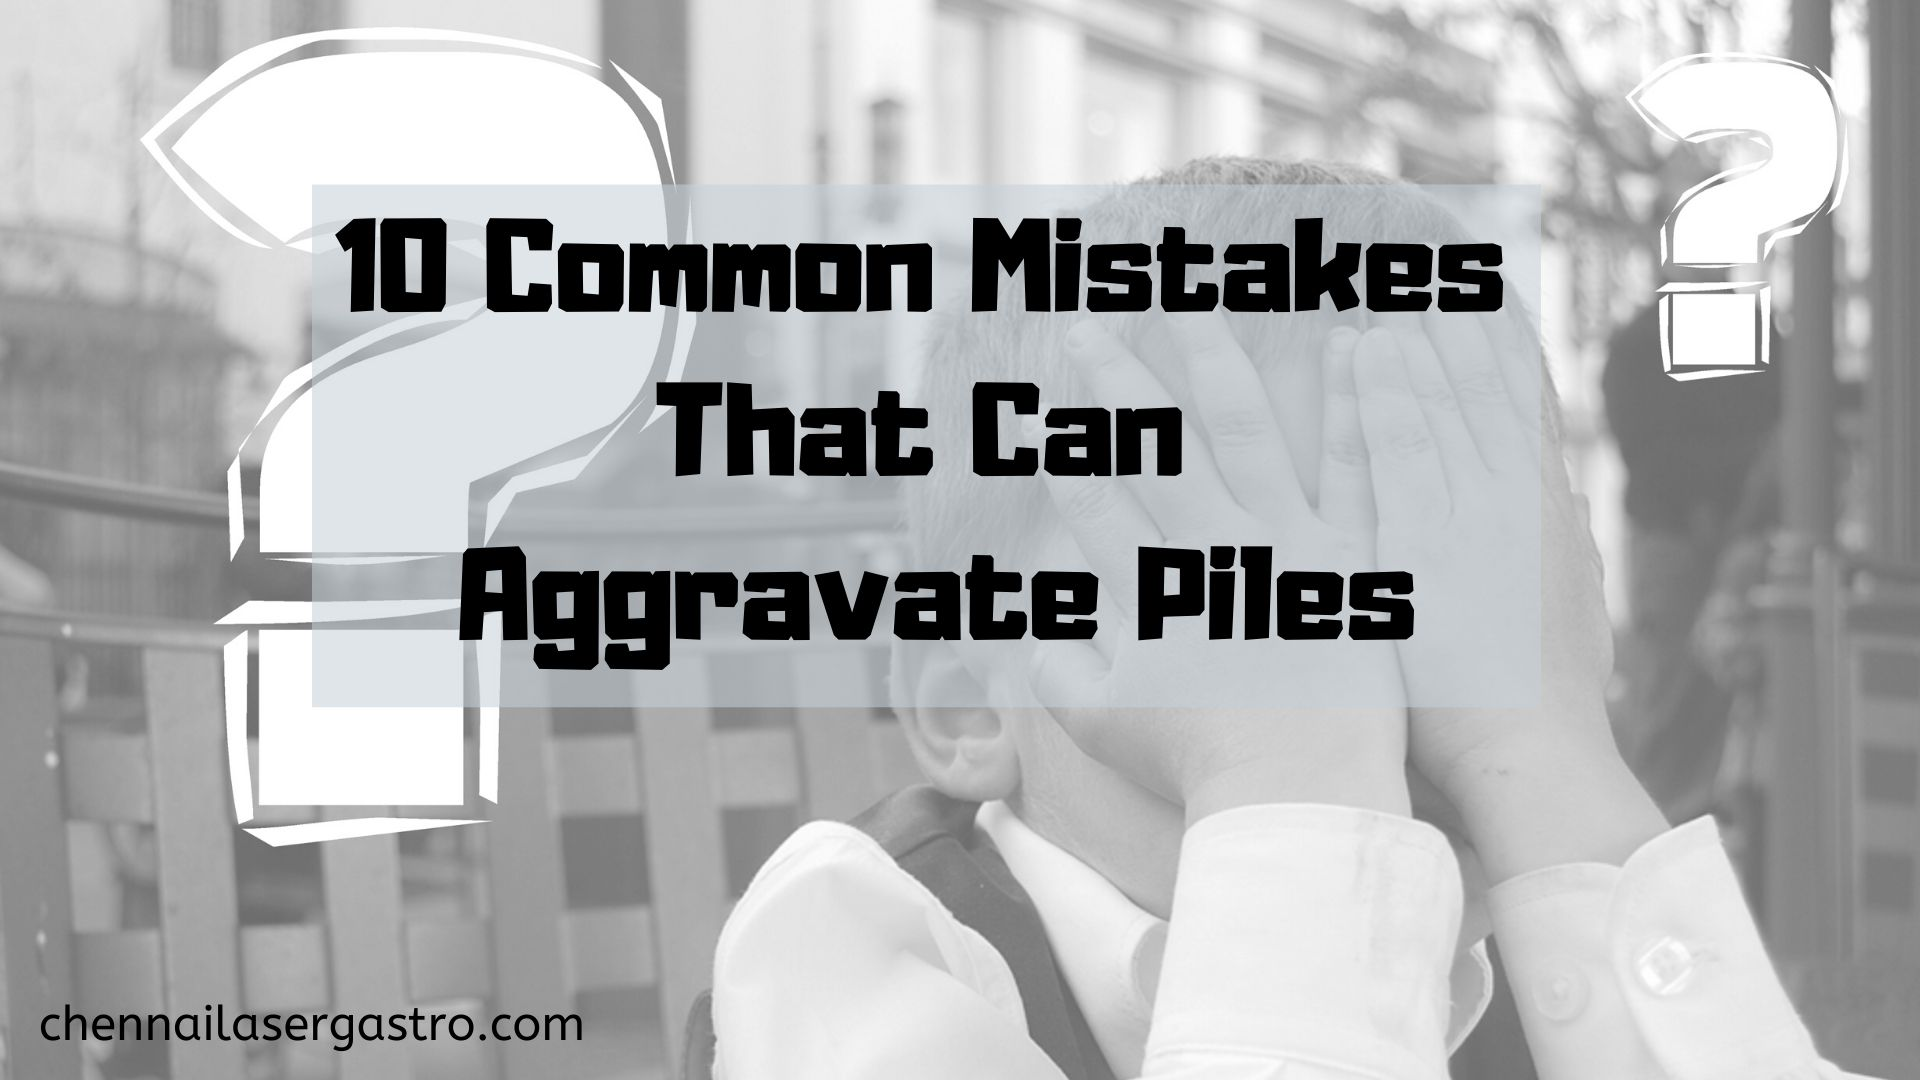 10 common mistakes that aggravate piles